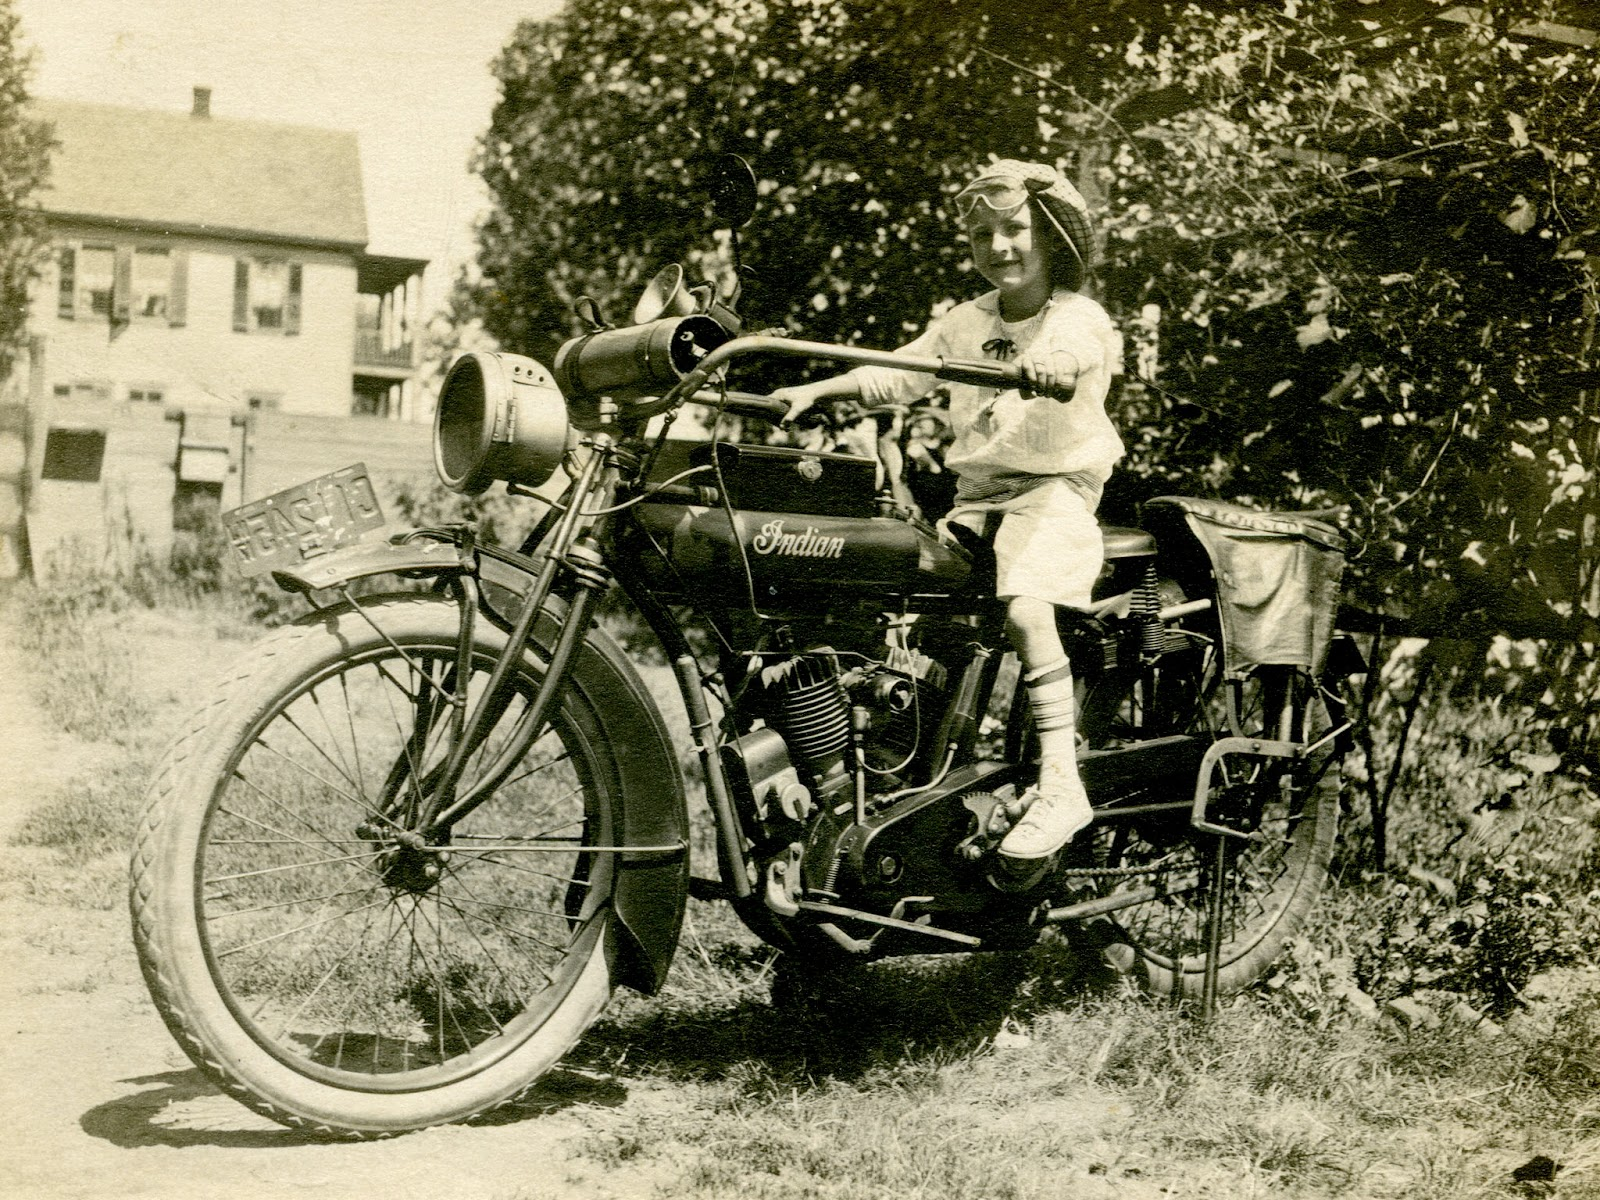 Little Girl Sitting On An Indian Motorcycle With 1917 New